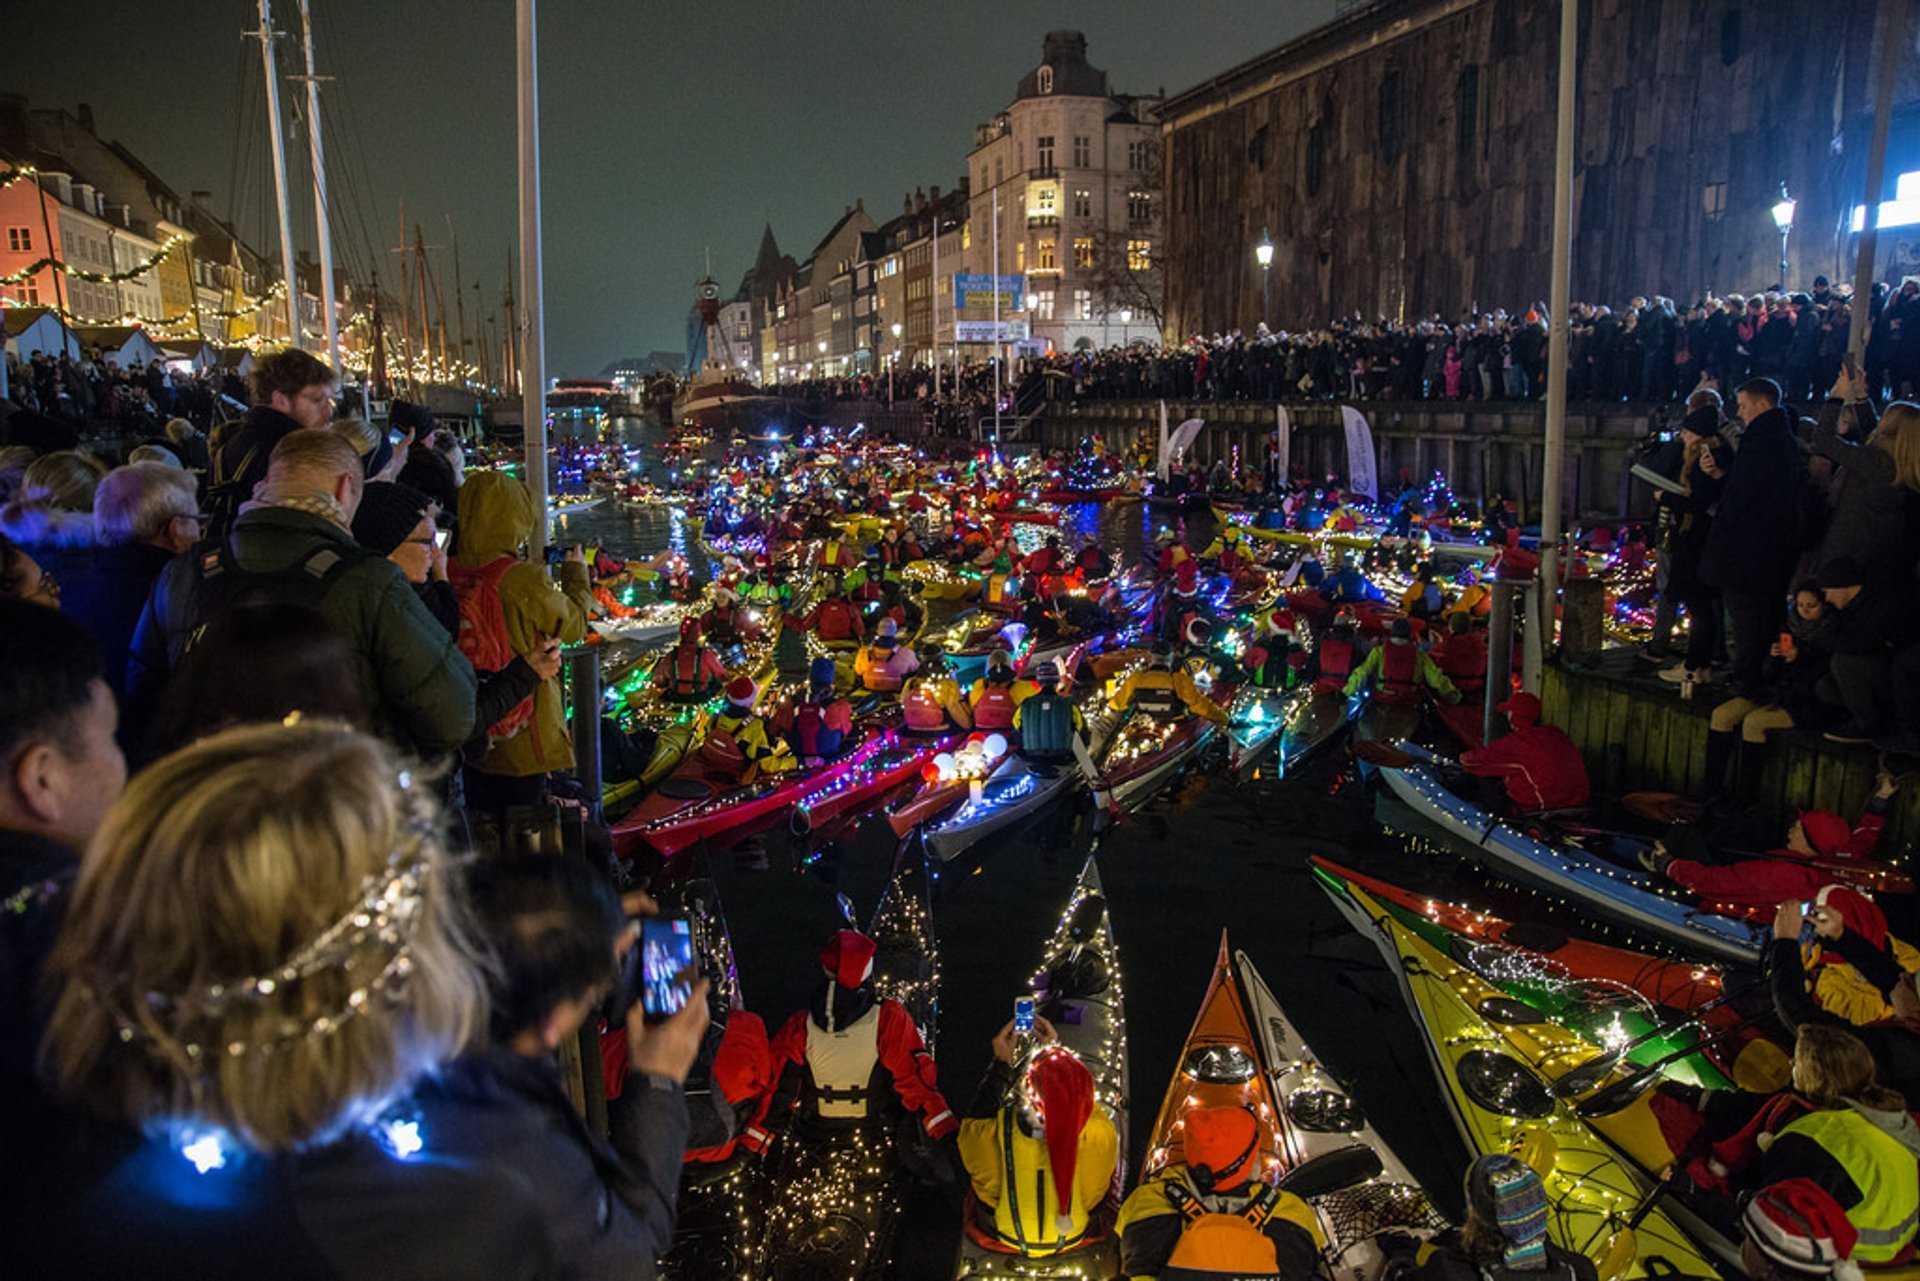 Saint Lucia Day in Copenhagen - Best Season 2020